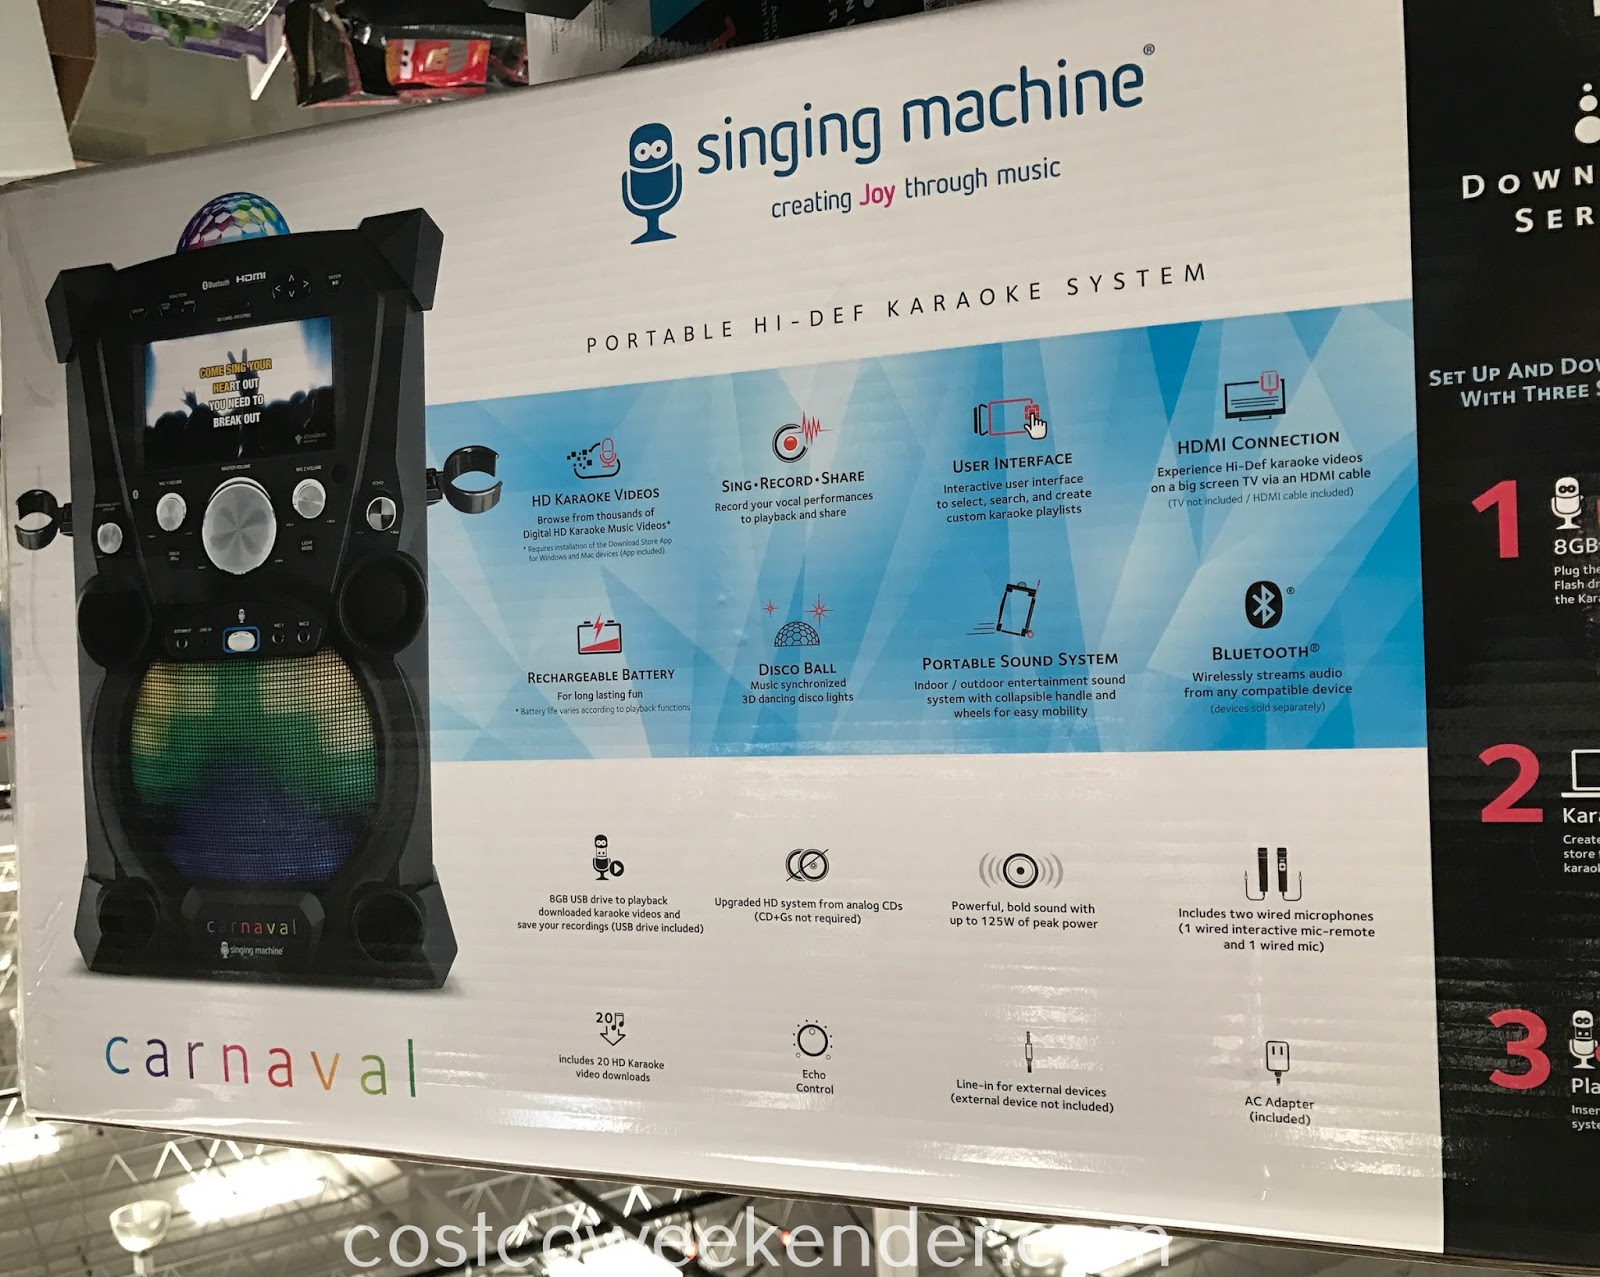 Costco 1009035 - Singing Machine Portable Hi-Def Karaoke System SDL9035: just in time for the family holiday season!